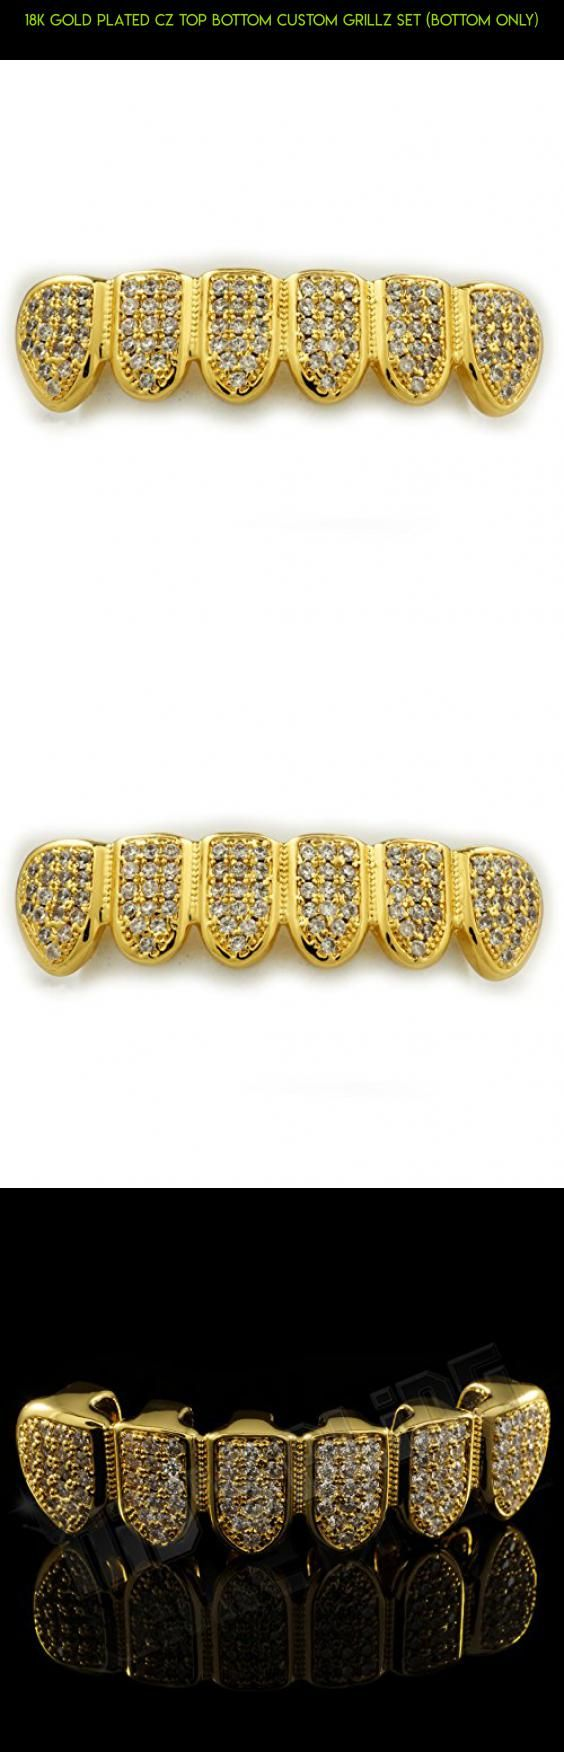 18K Gold Plated CZ Top Bottom CUSTOM GRILLZ SET (Bottom Only) #racing #parts #grills #gold #products #gadgets #plans #technology #fpv #shopping #camera #kit #tech #drone